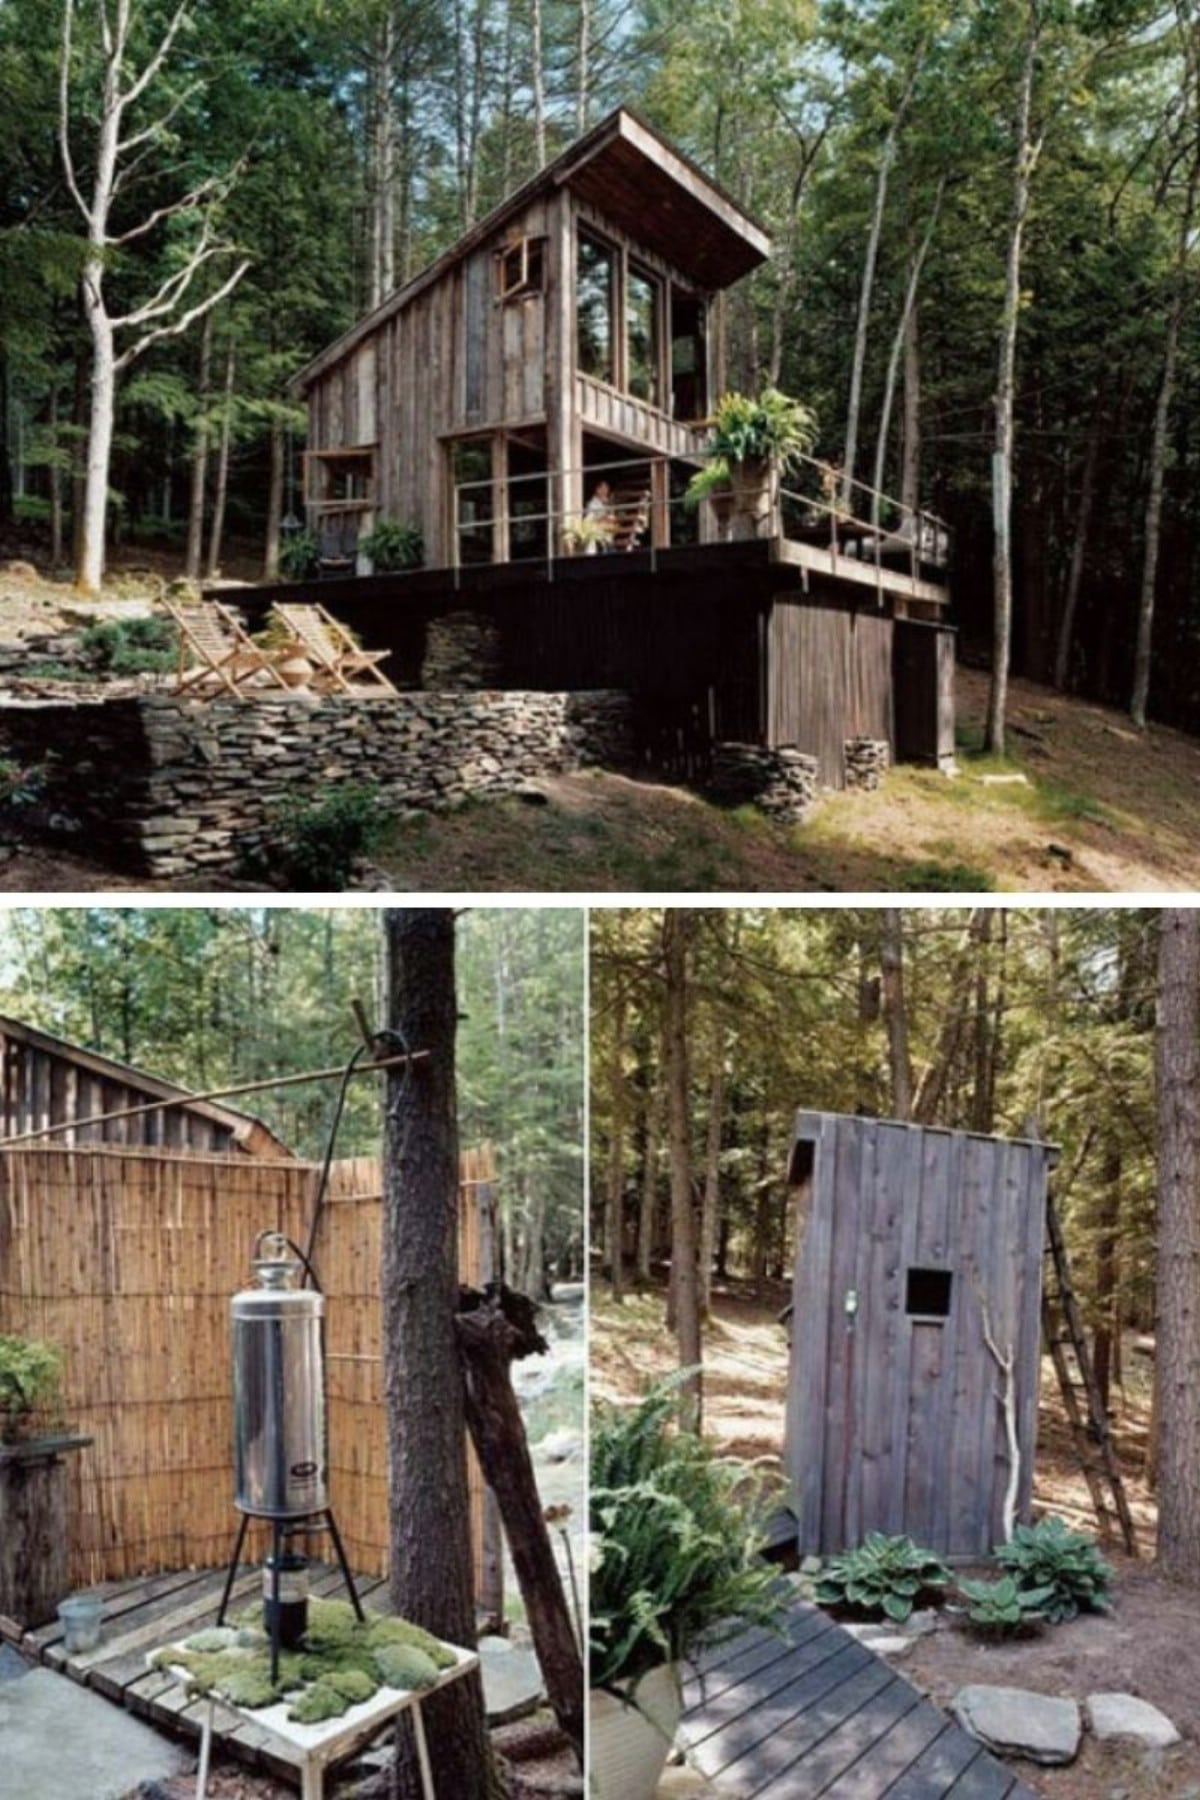 New York Off-the-Grid Rustic Home